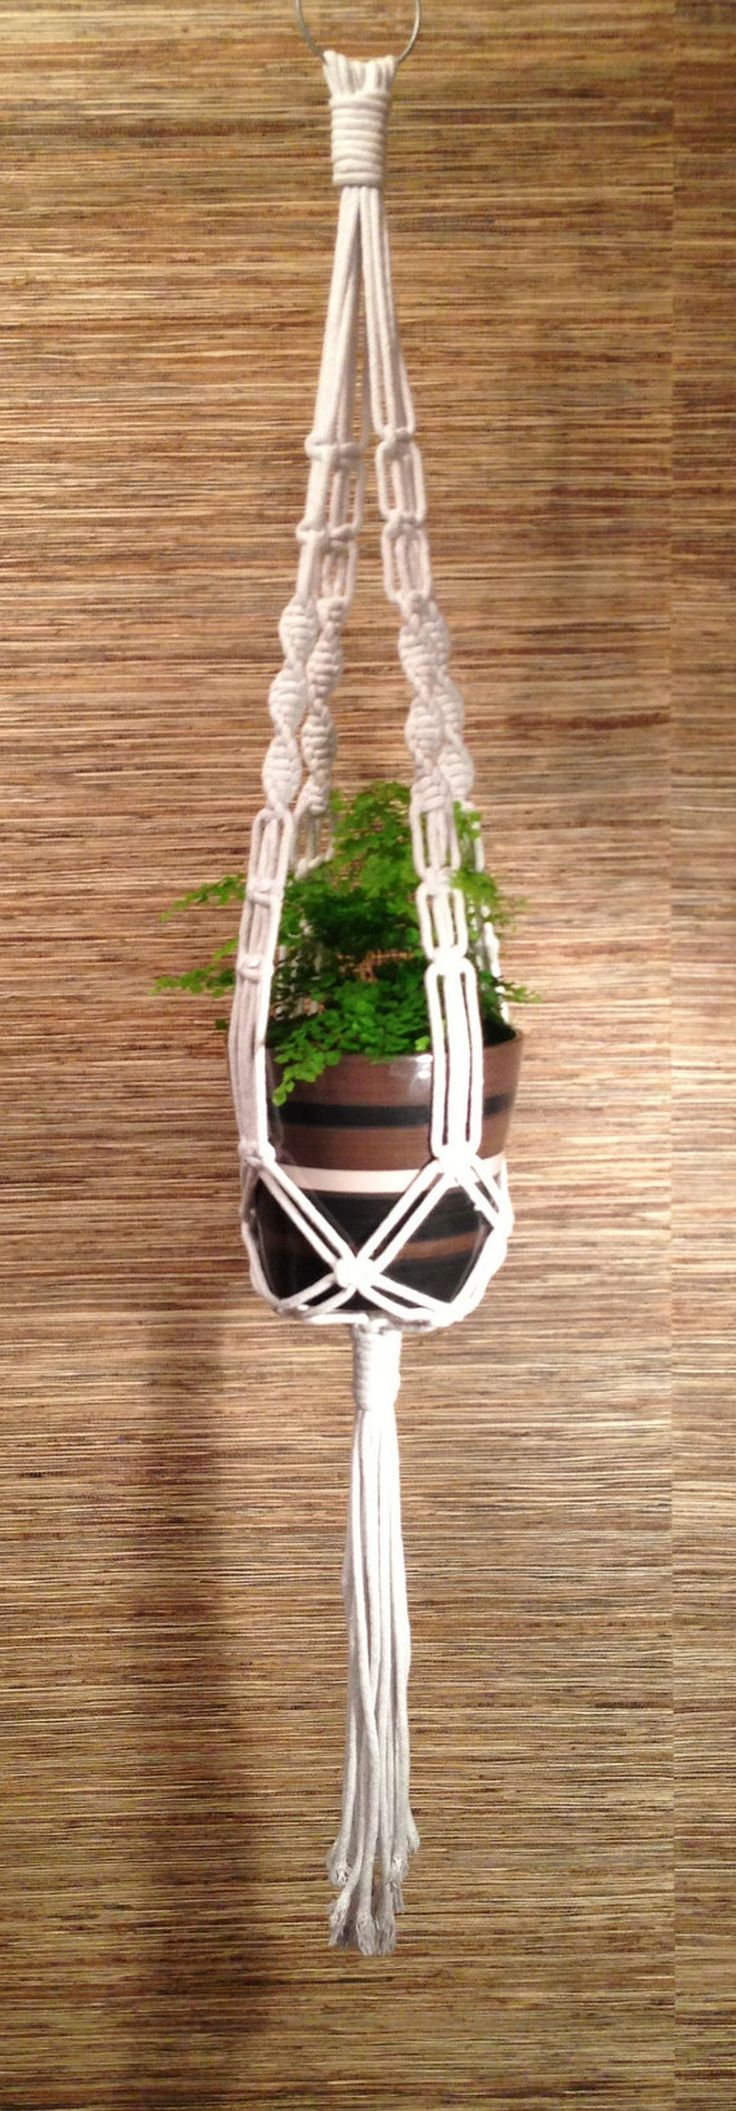 how to make a macrame plant holder best 25 macrame plant hangers ideas on 2981